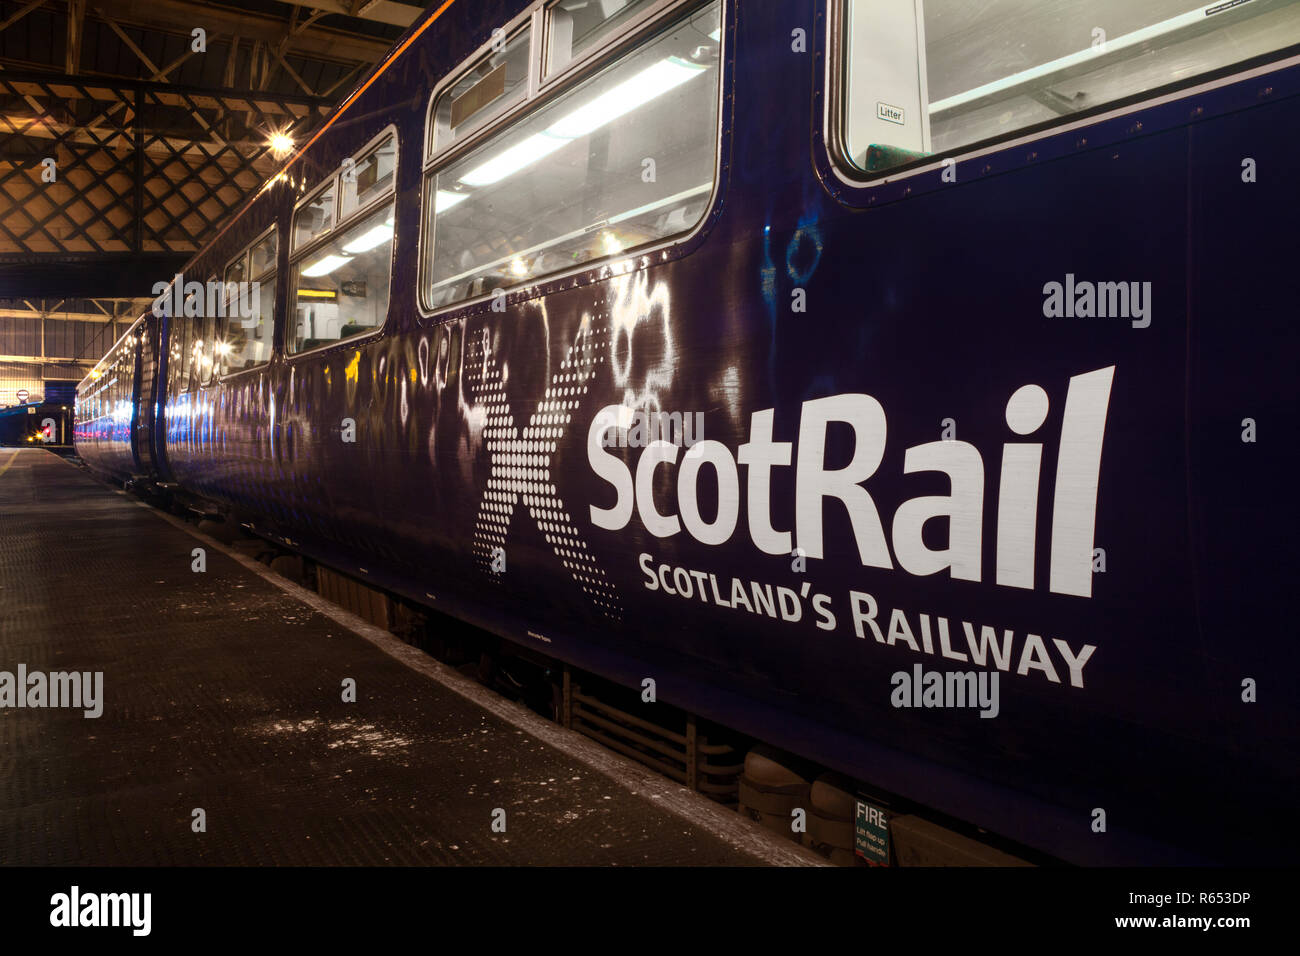 Scotrail class 156 sprinter train at Carlisle railway station showing the Scotrail logo - Stock Image